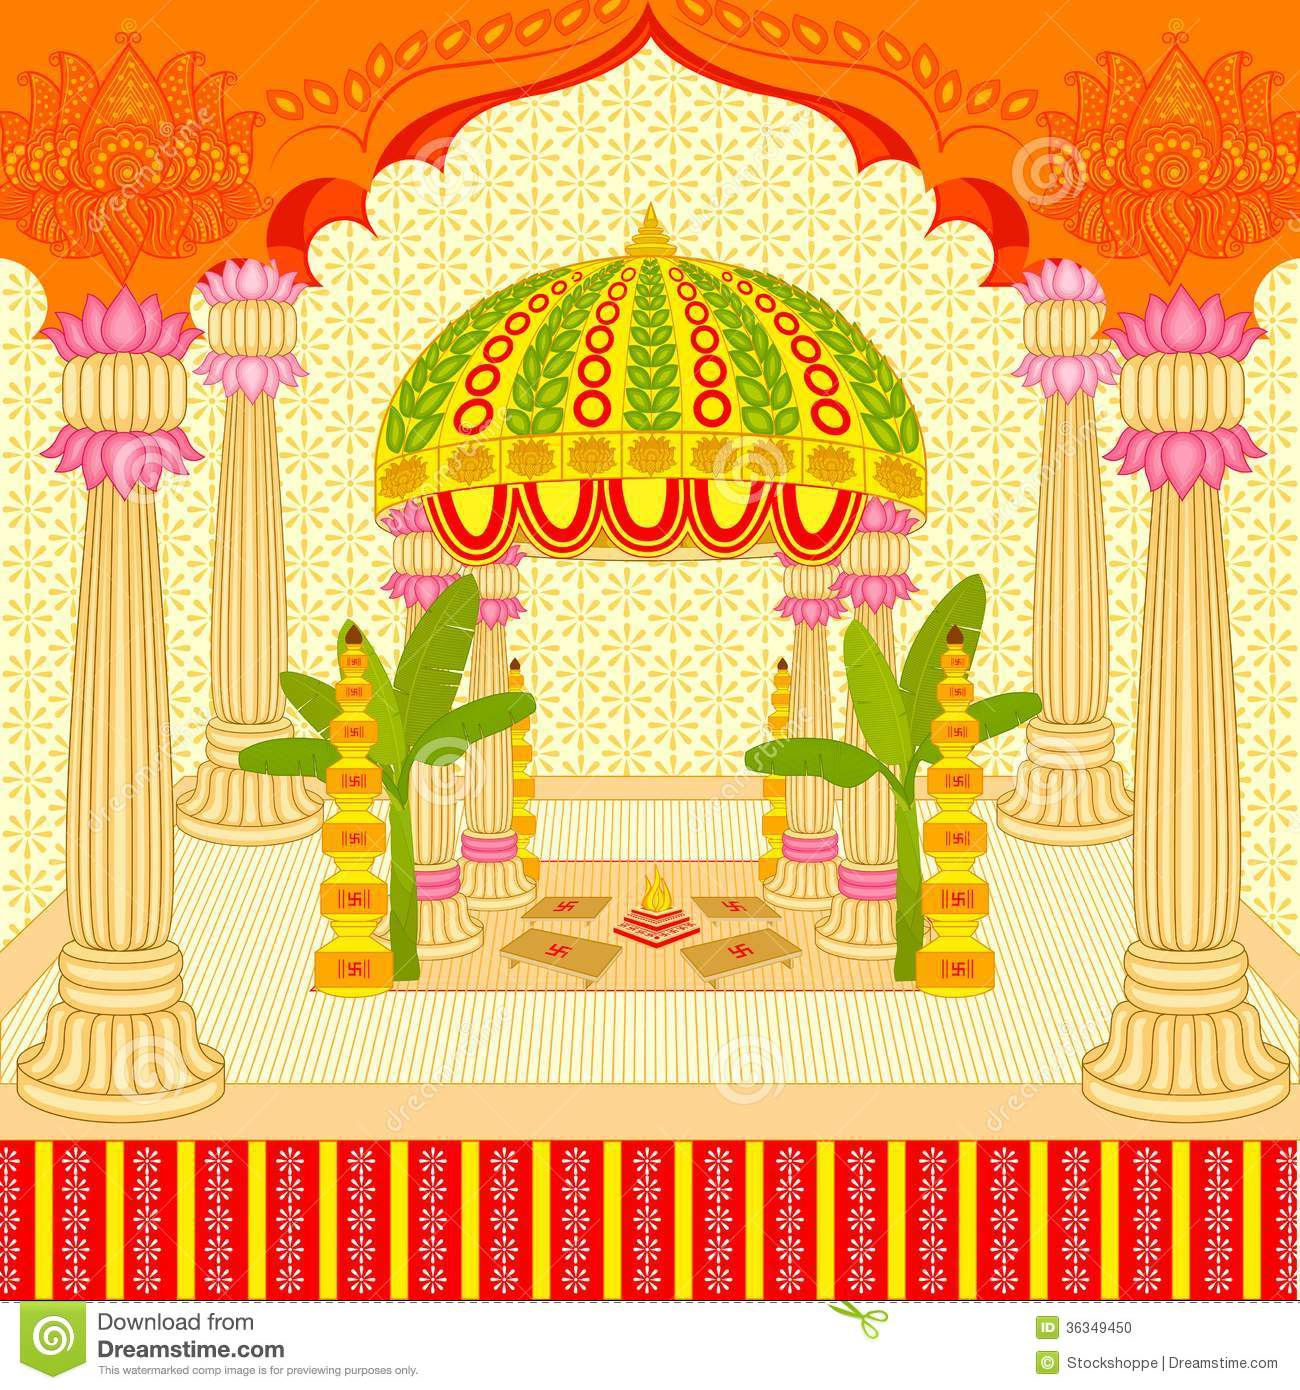 Indian Wedding Clipart Vector Free Download 3 Clipart Station